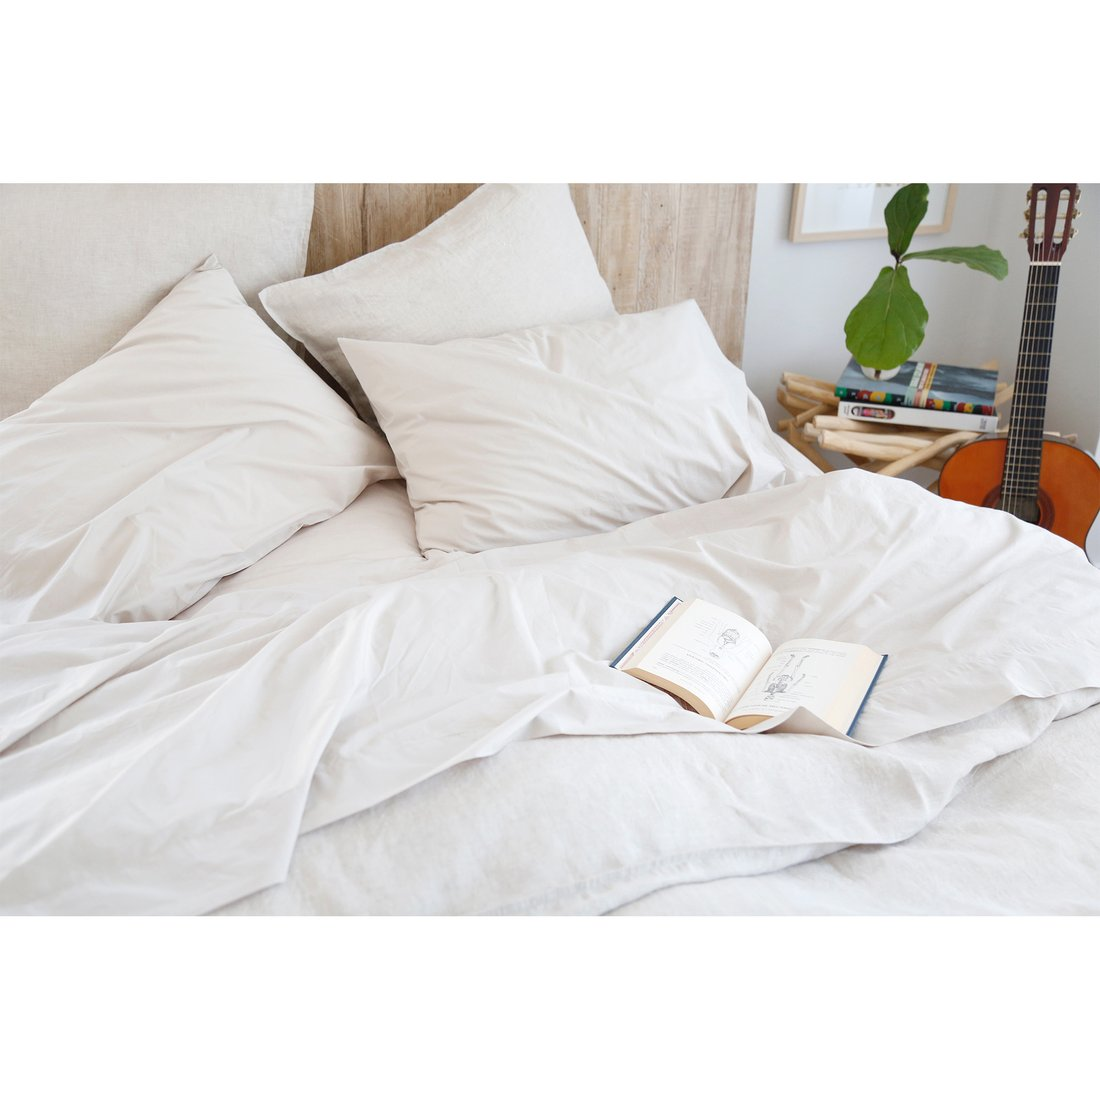 Egyptian Cotton Sheets | Egyptian Percale Cotton Sheets | Egyptian Cotton  Sheets King